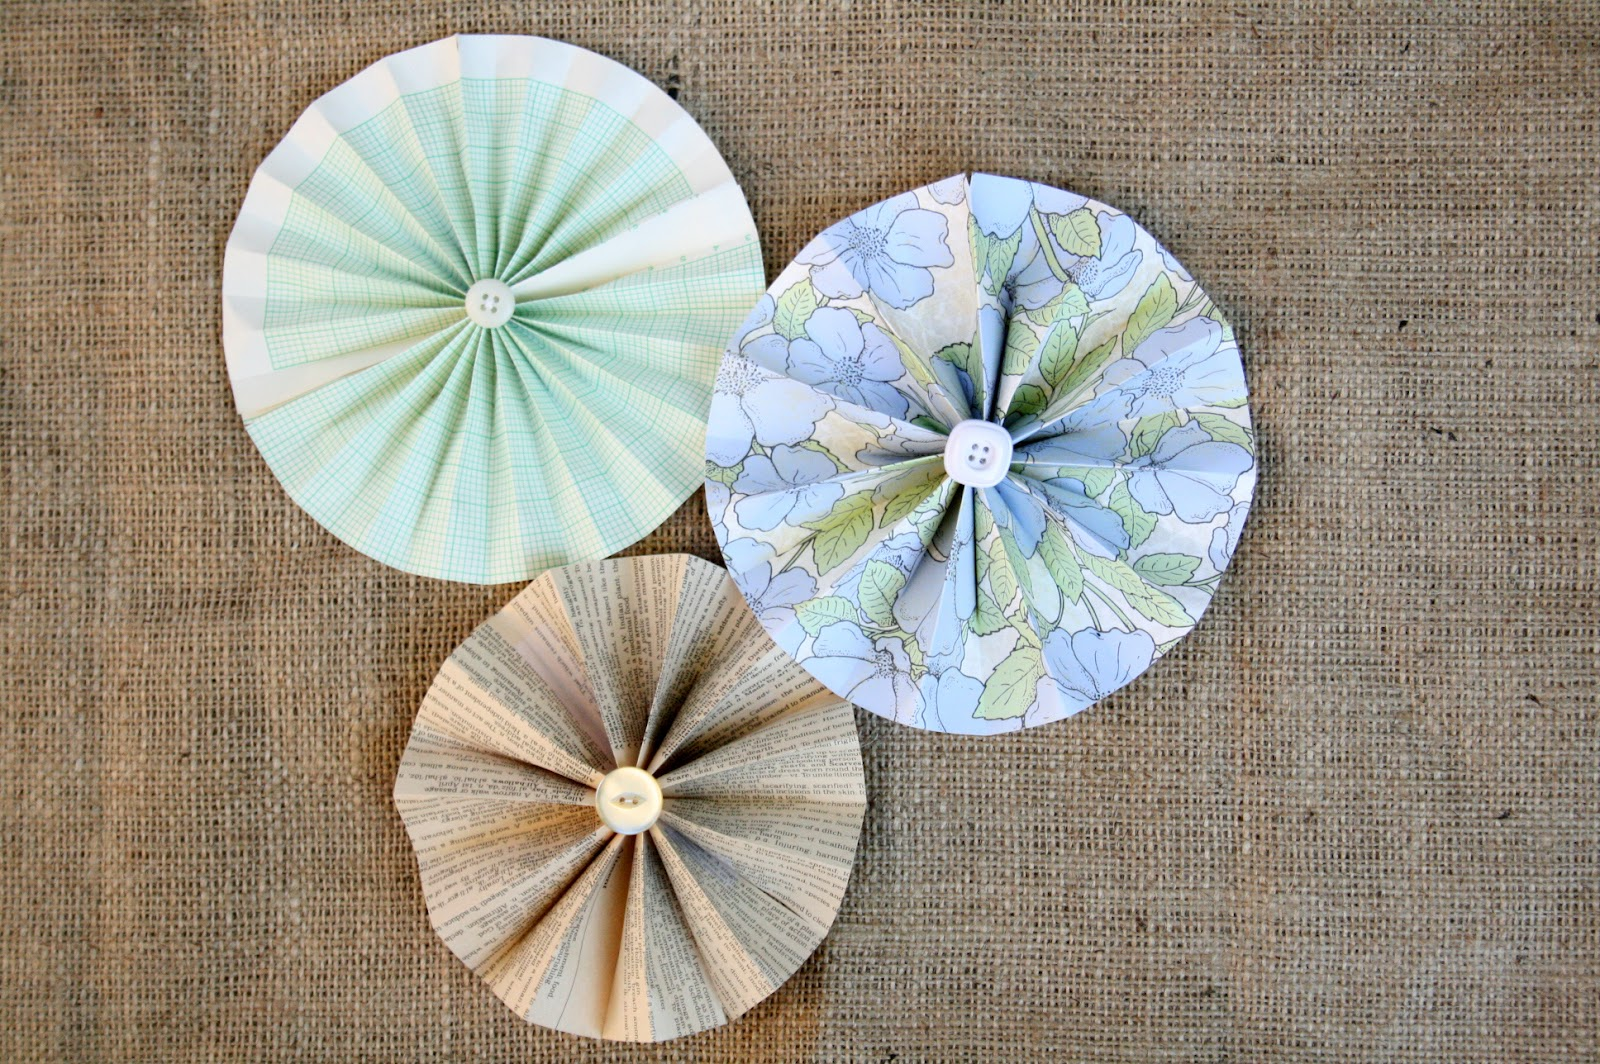 How To Make Handmade Flowers From Paper The Creative Place Diy Paper Flower Wheels